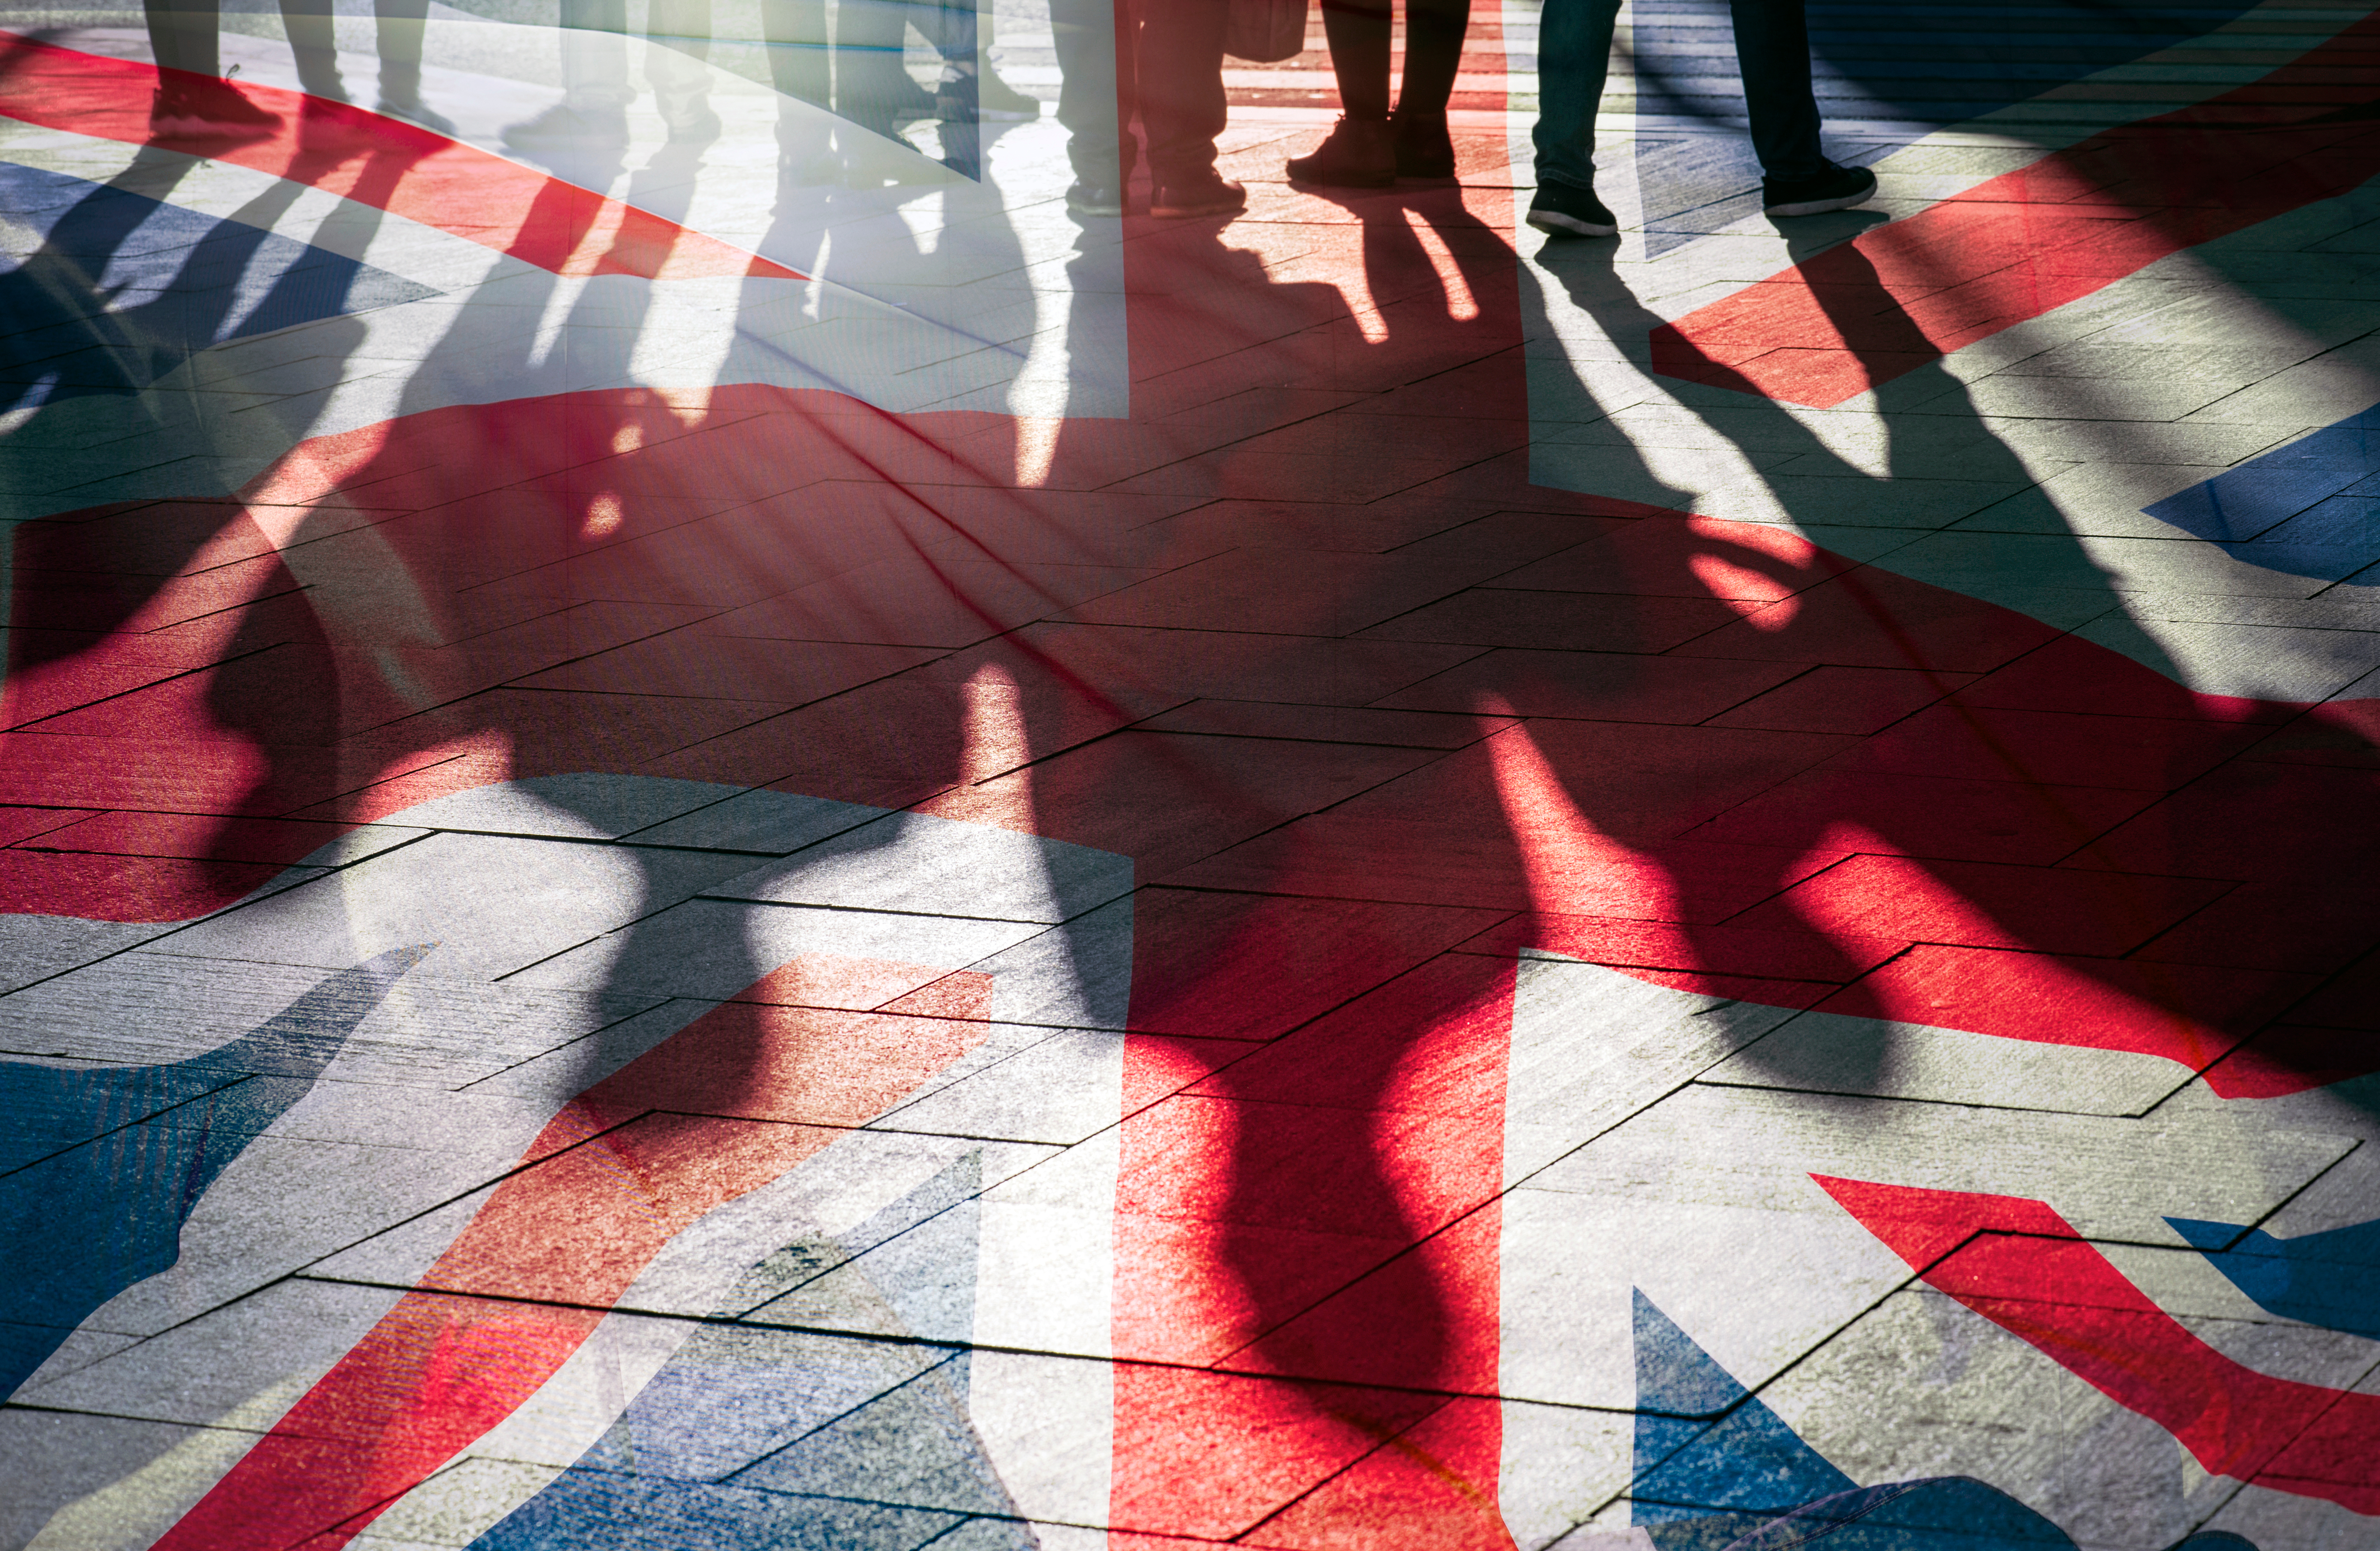 Shadows of people in front of UK flag